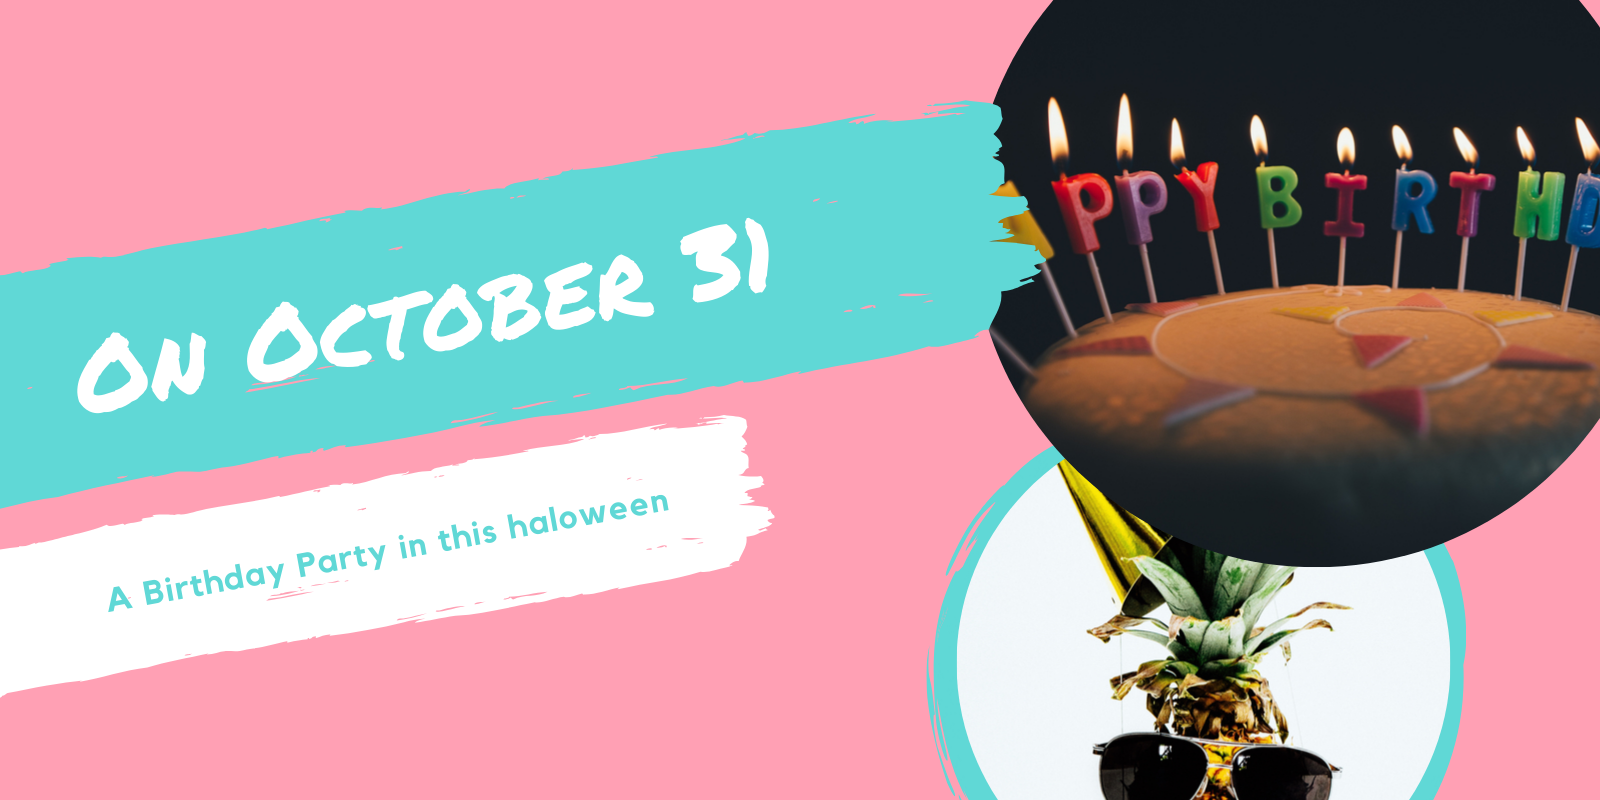 On October 31 halloween birthday party